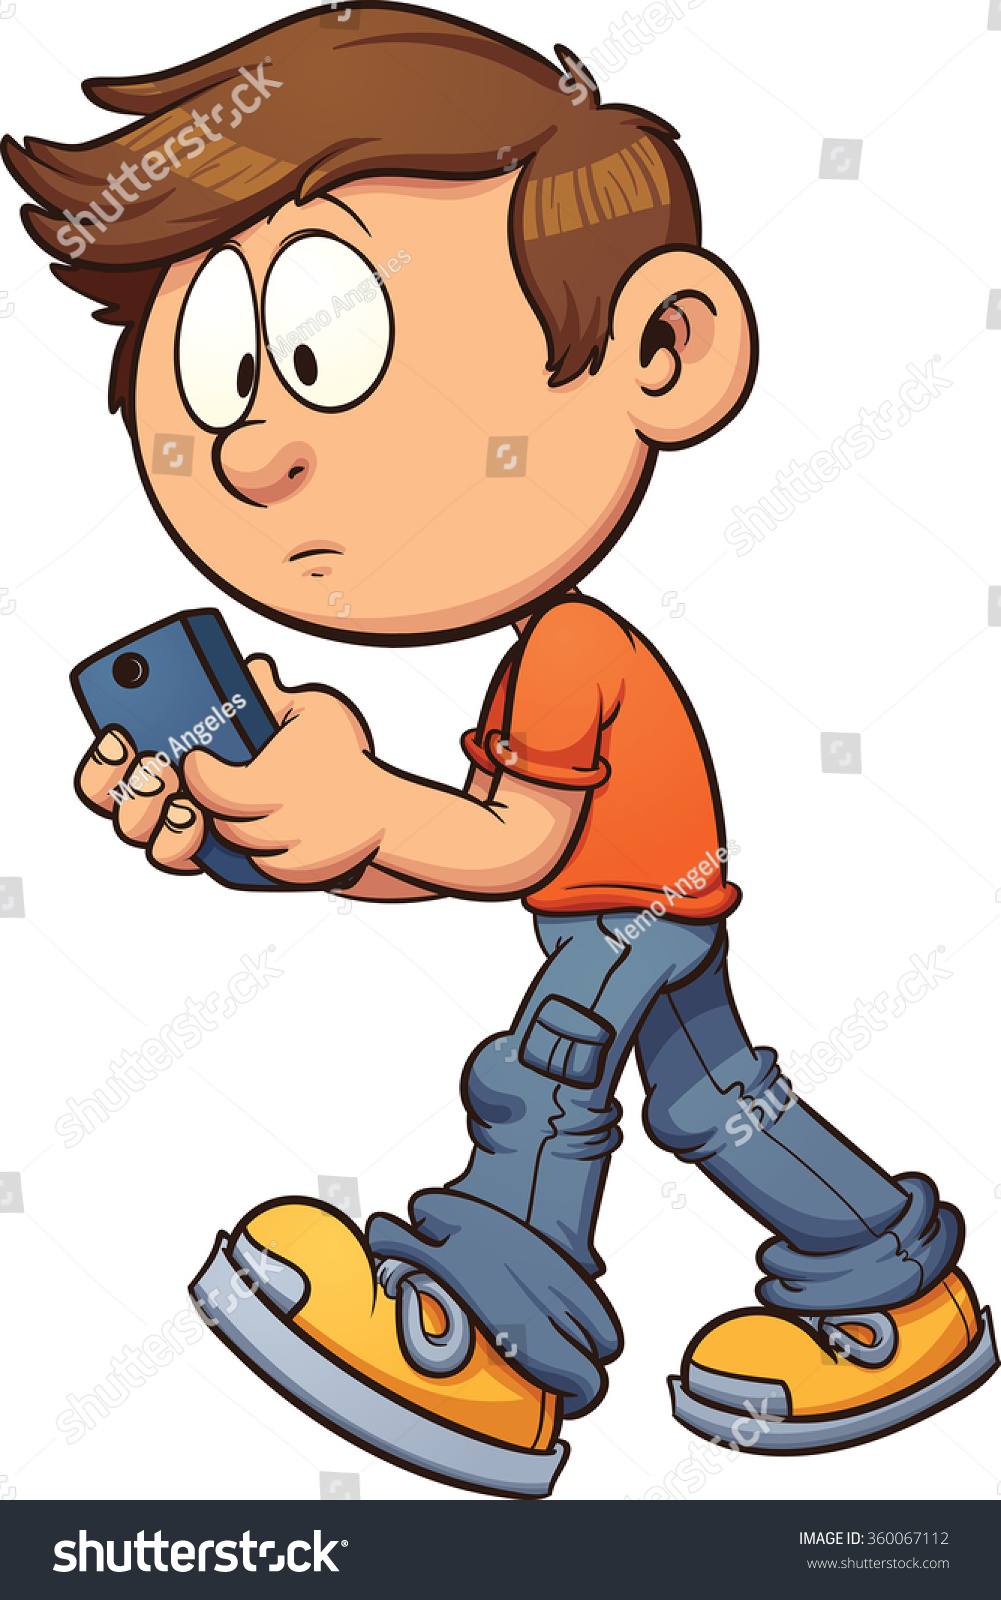 Texting Clip Art Free